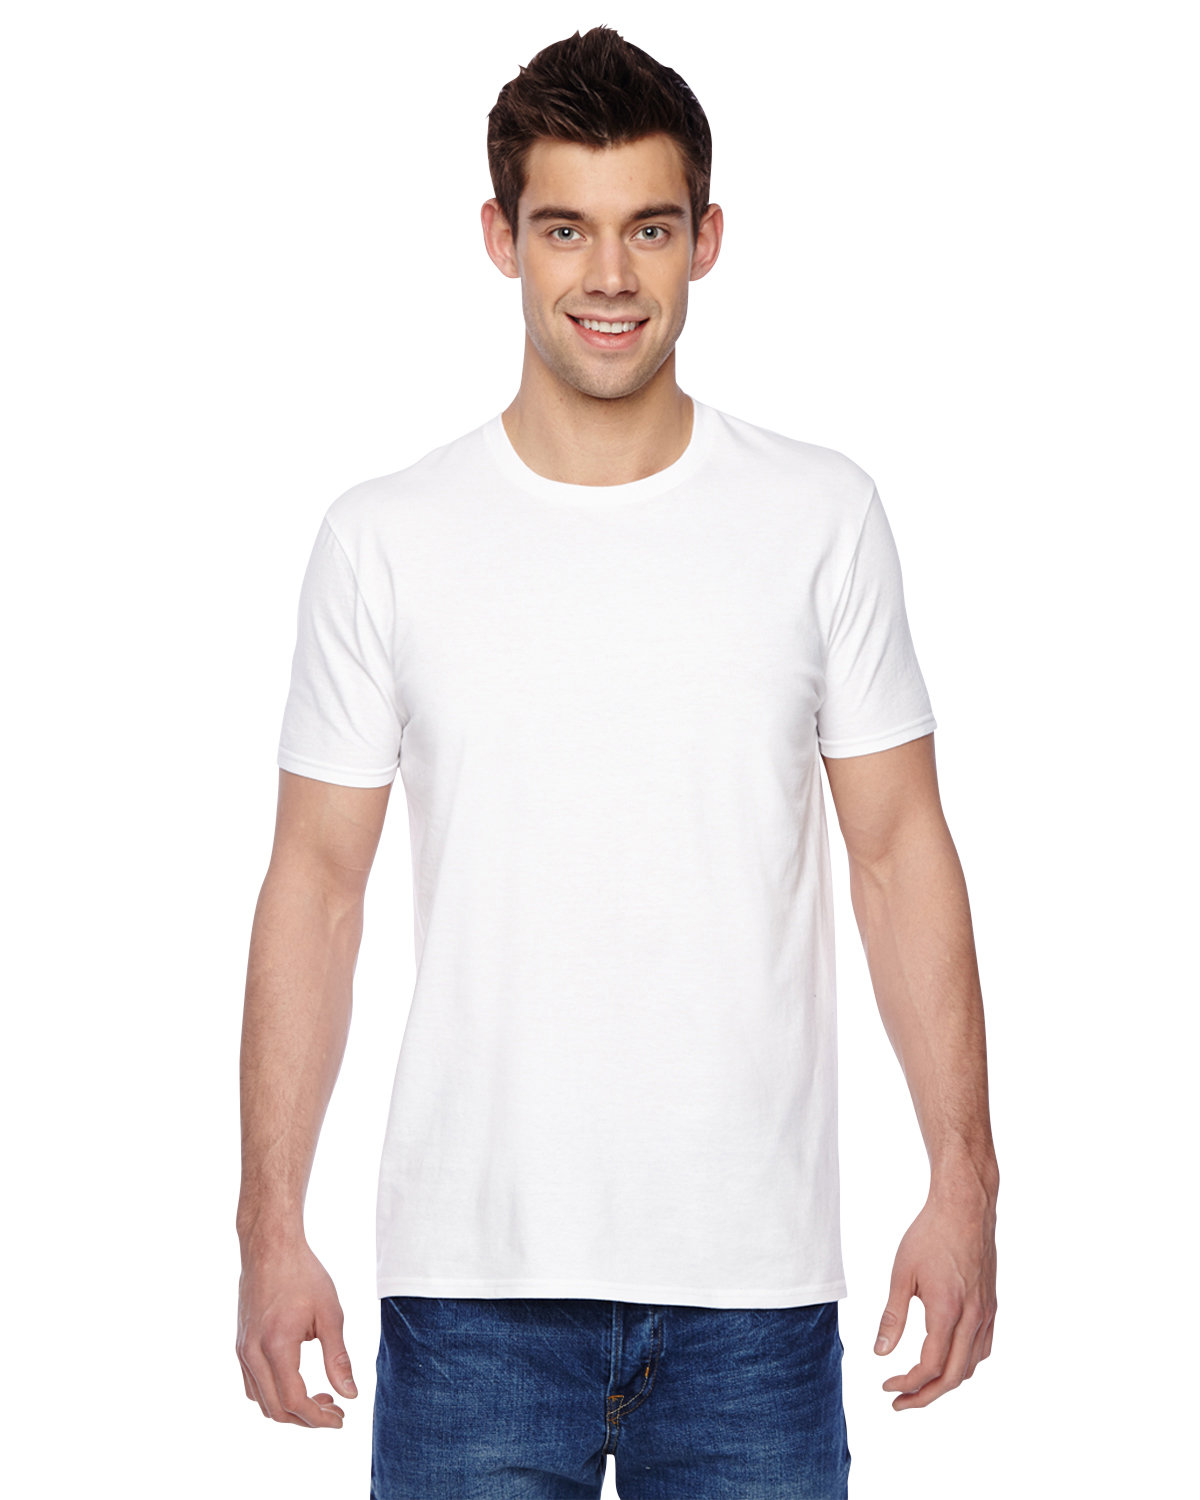 Fruit of the Loom Adult Sofspun® Jersey Crew T-Shirt WHITE